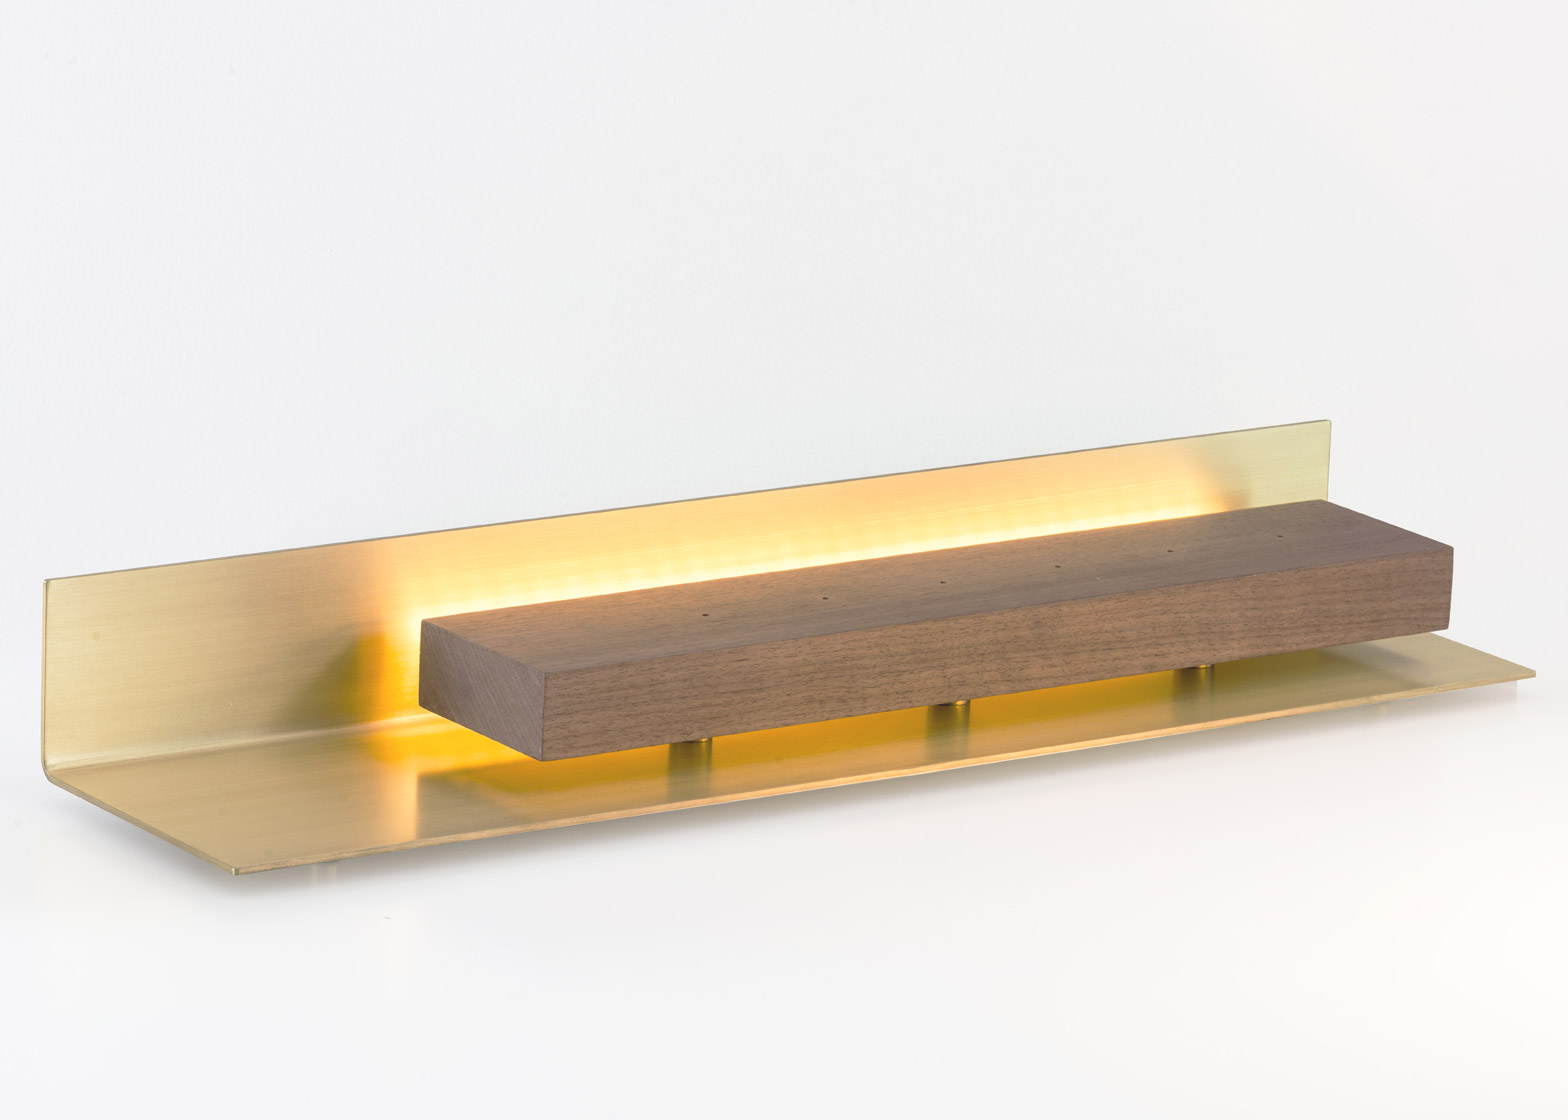 Vari lights by Esrawe Studio